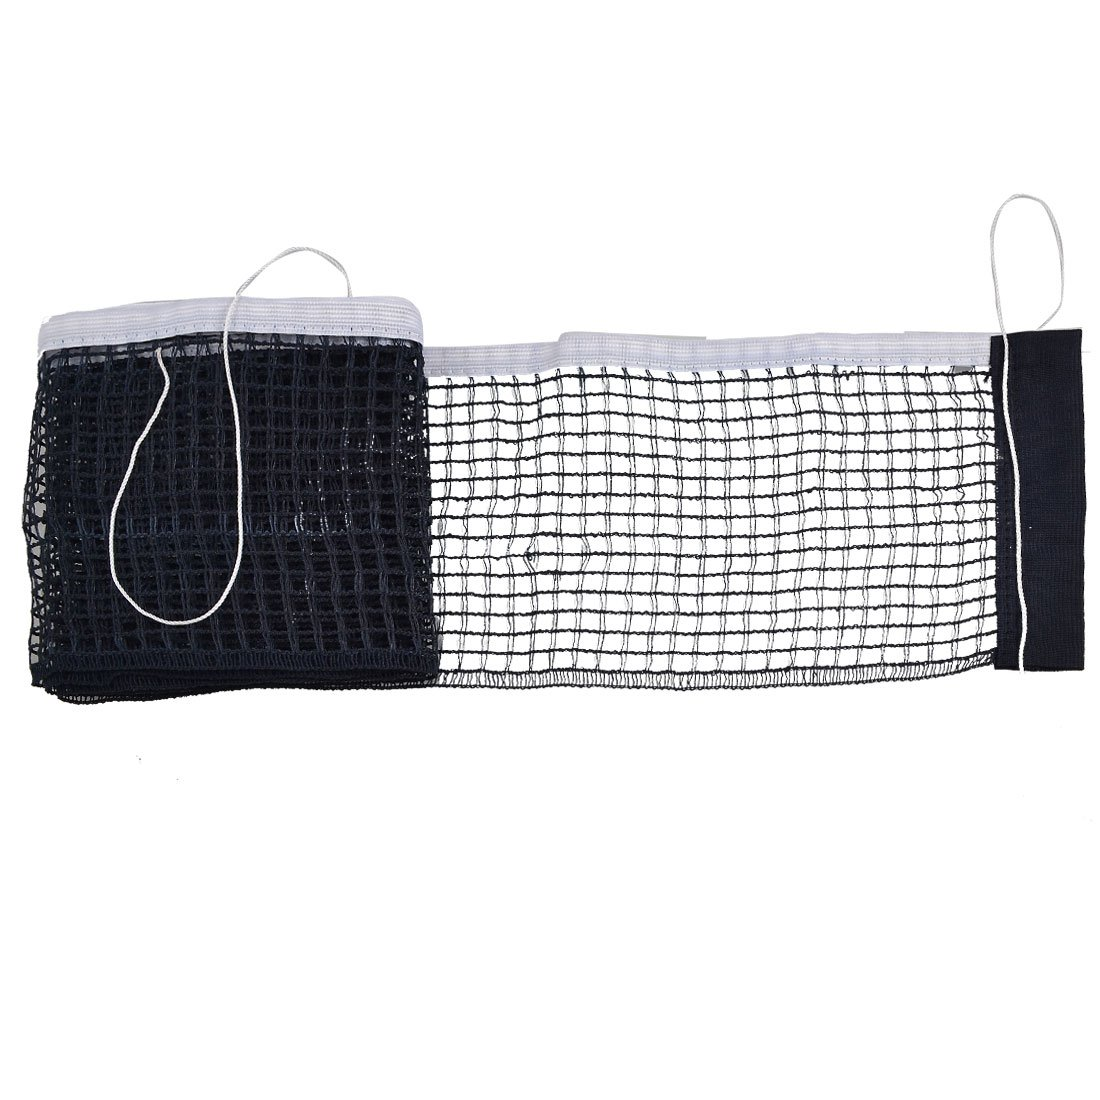 Replaceable Black White Nylon Polyester Sports Table Tennis Net Dimart a12071900ux0419